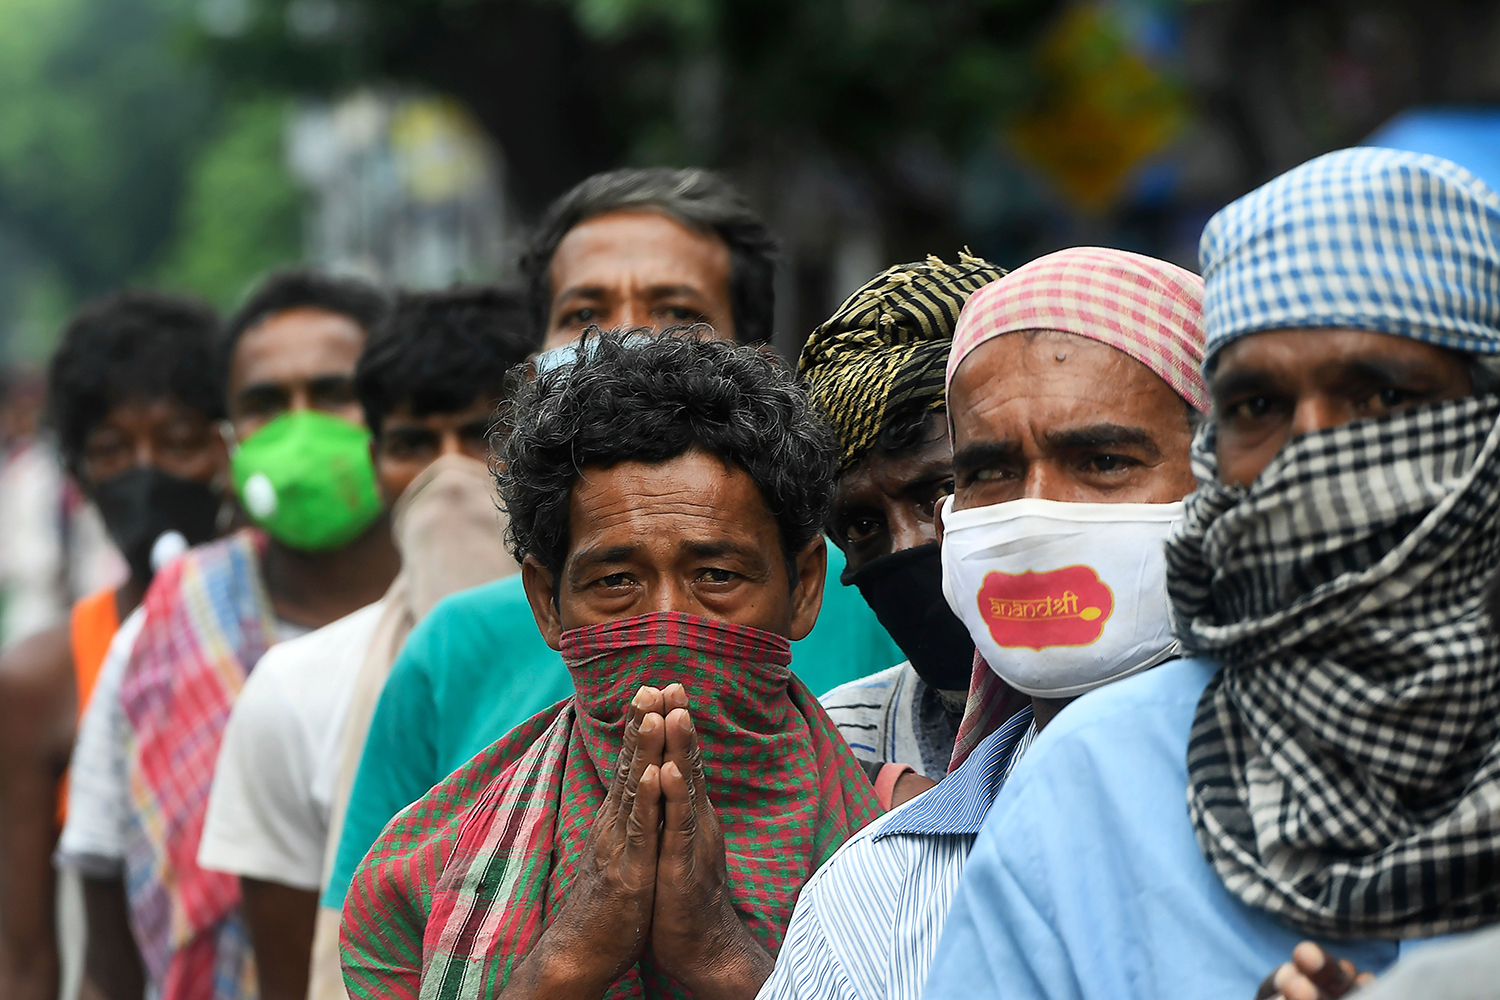 Homeless people wait in a line to collect food on the side of a road in Kolkata, India, on July 25. DIBYANGSHU SARKAR/AFP via Getty Images